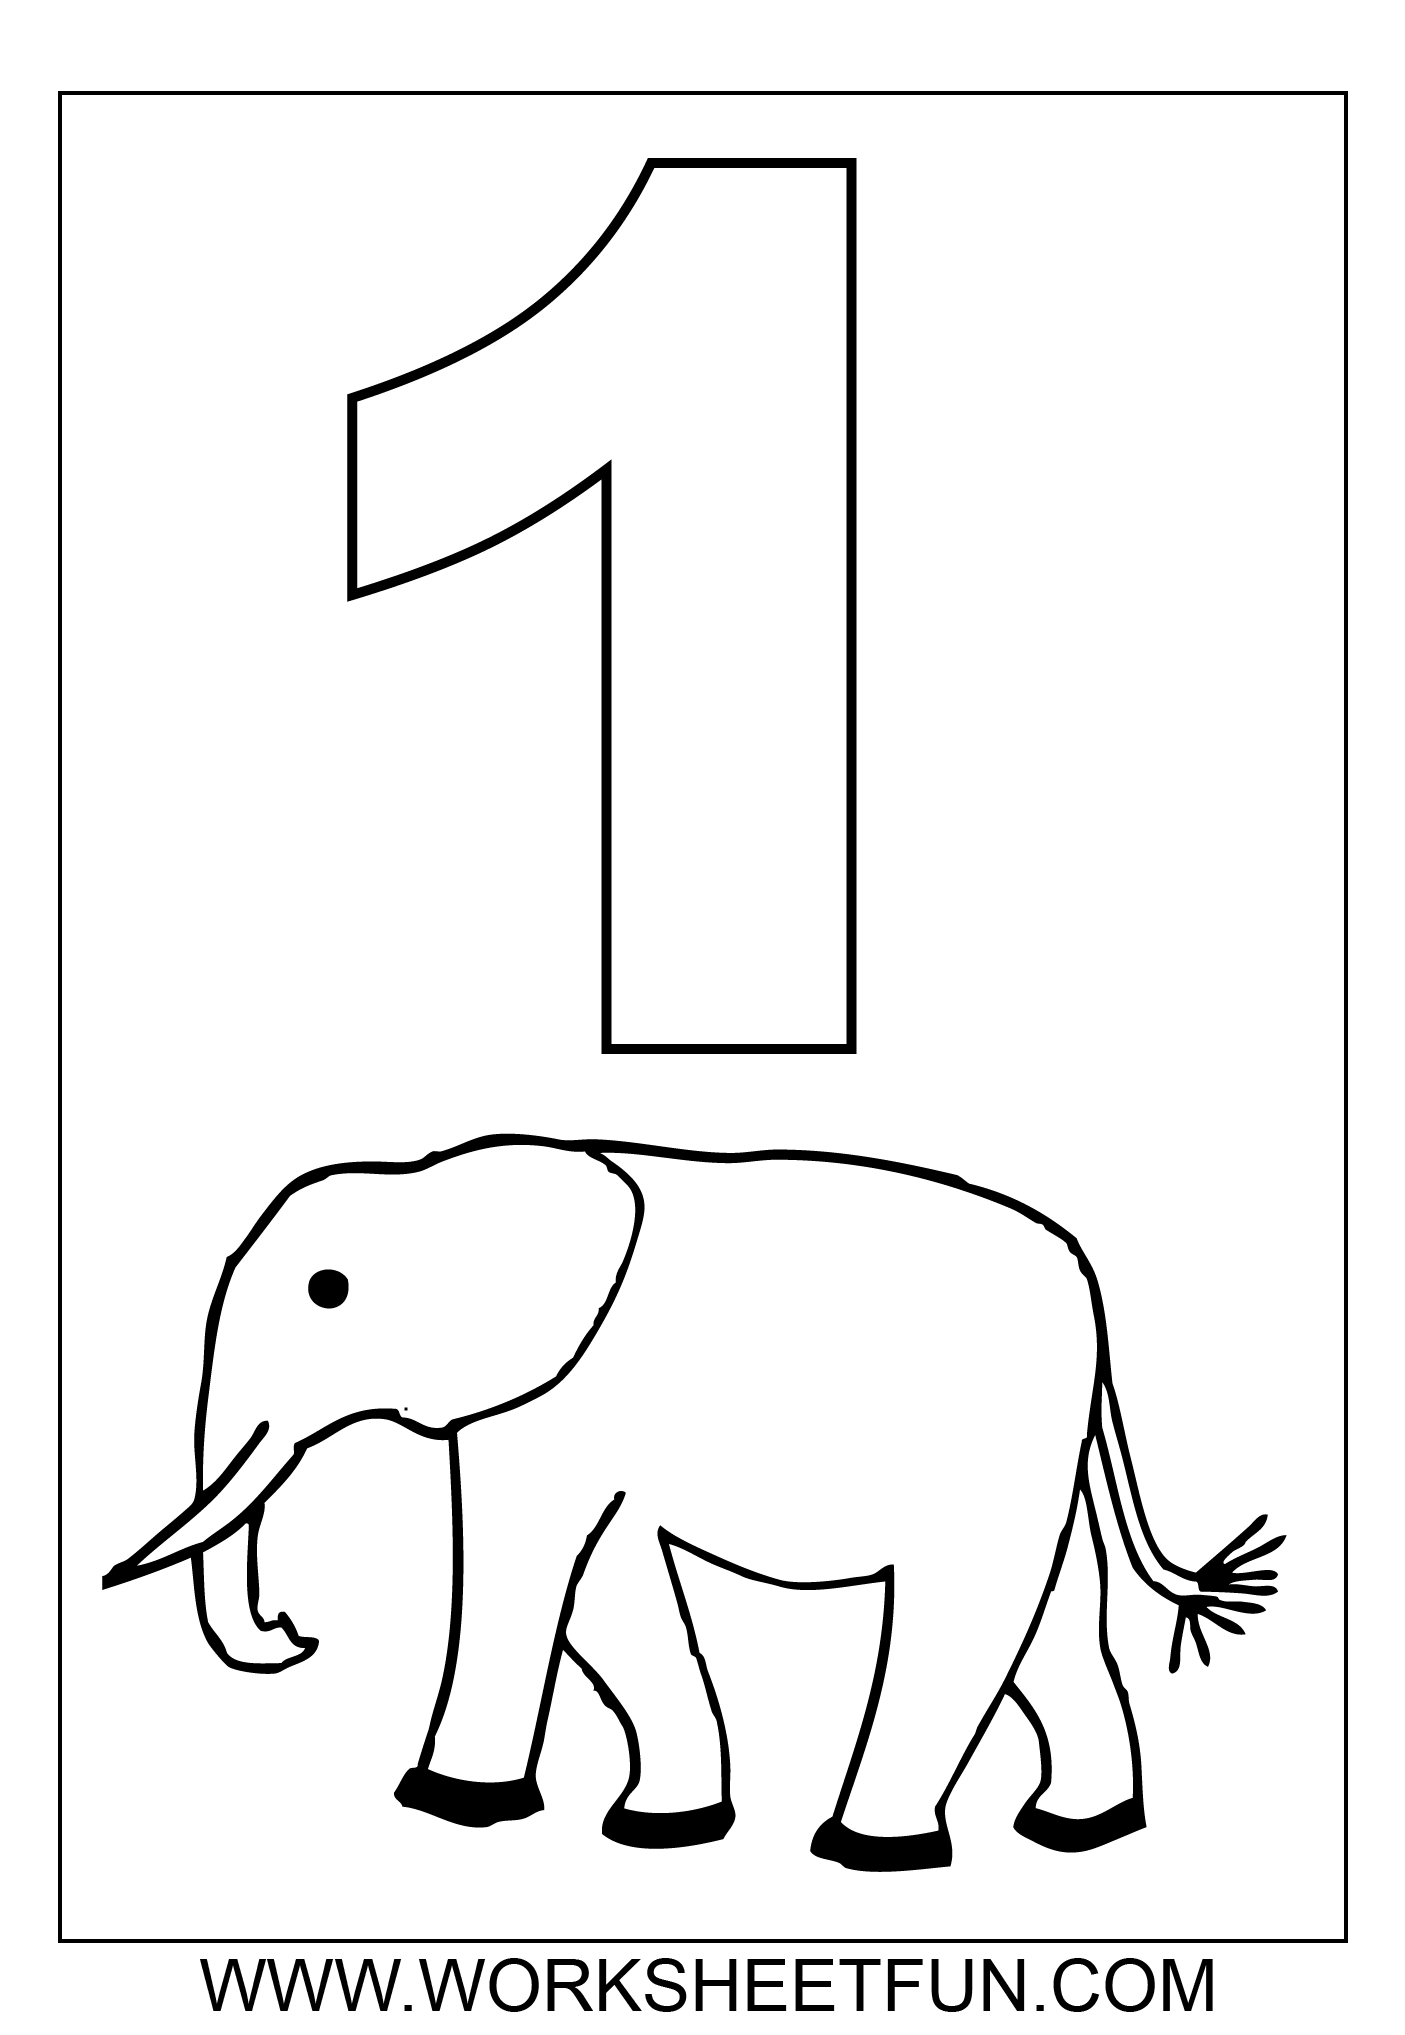 Adult Beauty 1 Coloring Page Images top printable coloring pages numbers 1 20 number jamesenye gallery images